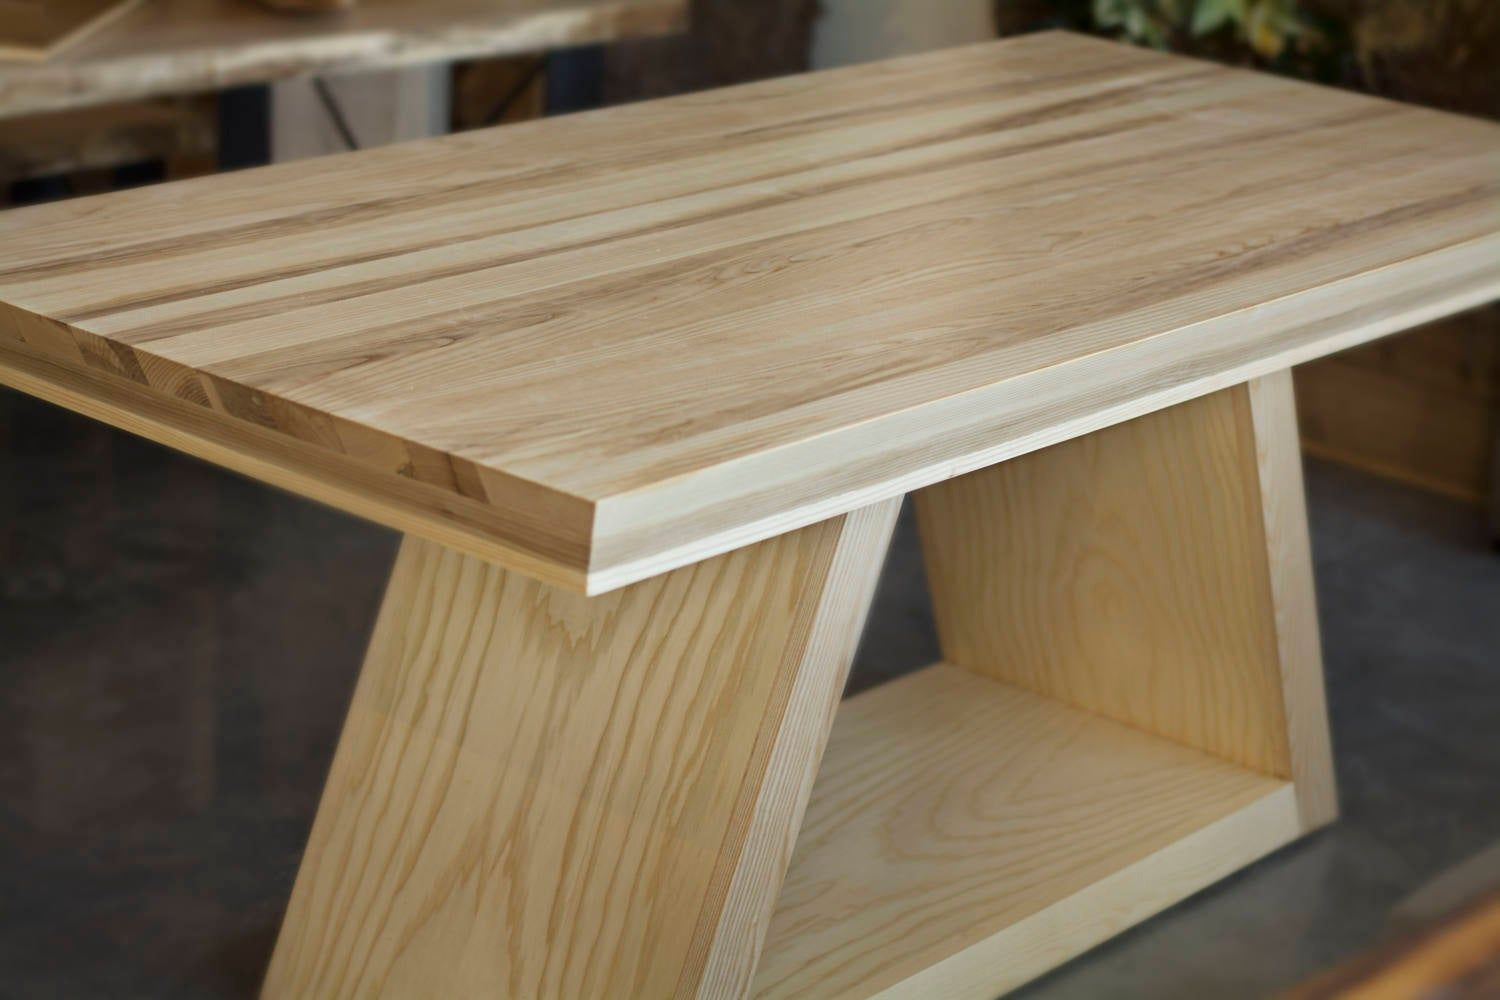 Handmade Wood Dining Table In Ash Wood With Angular Pedestal Table